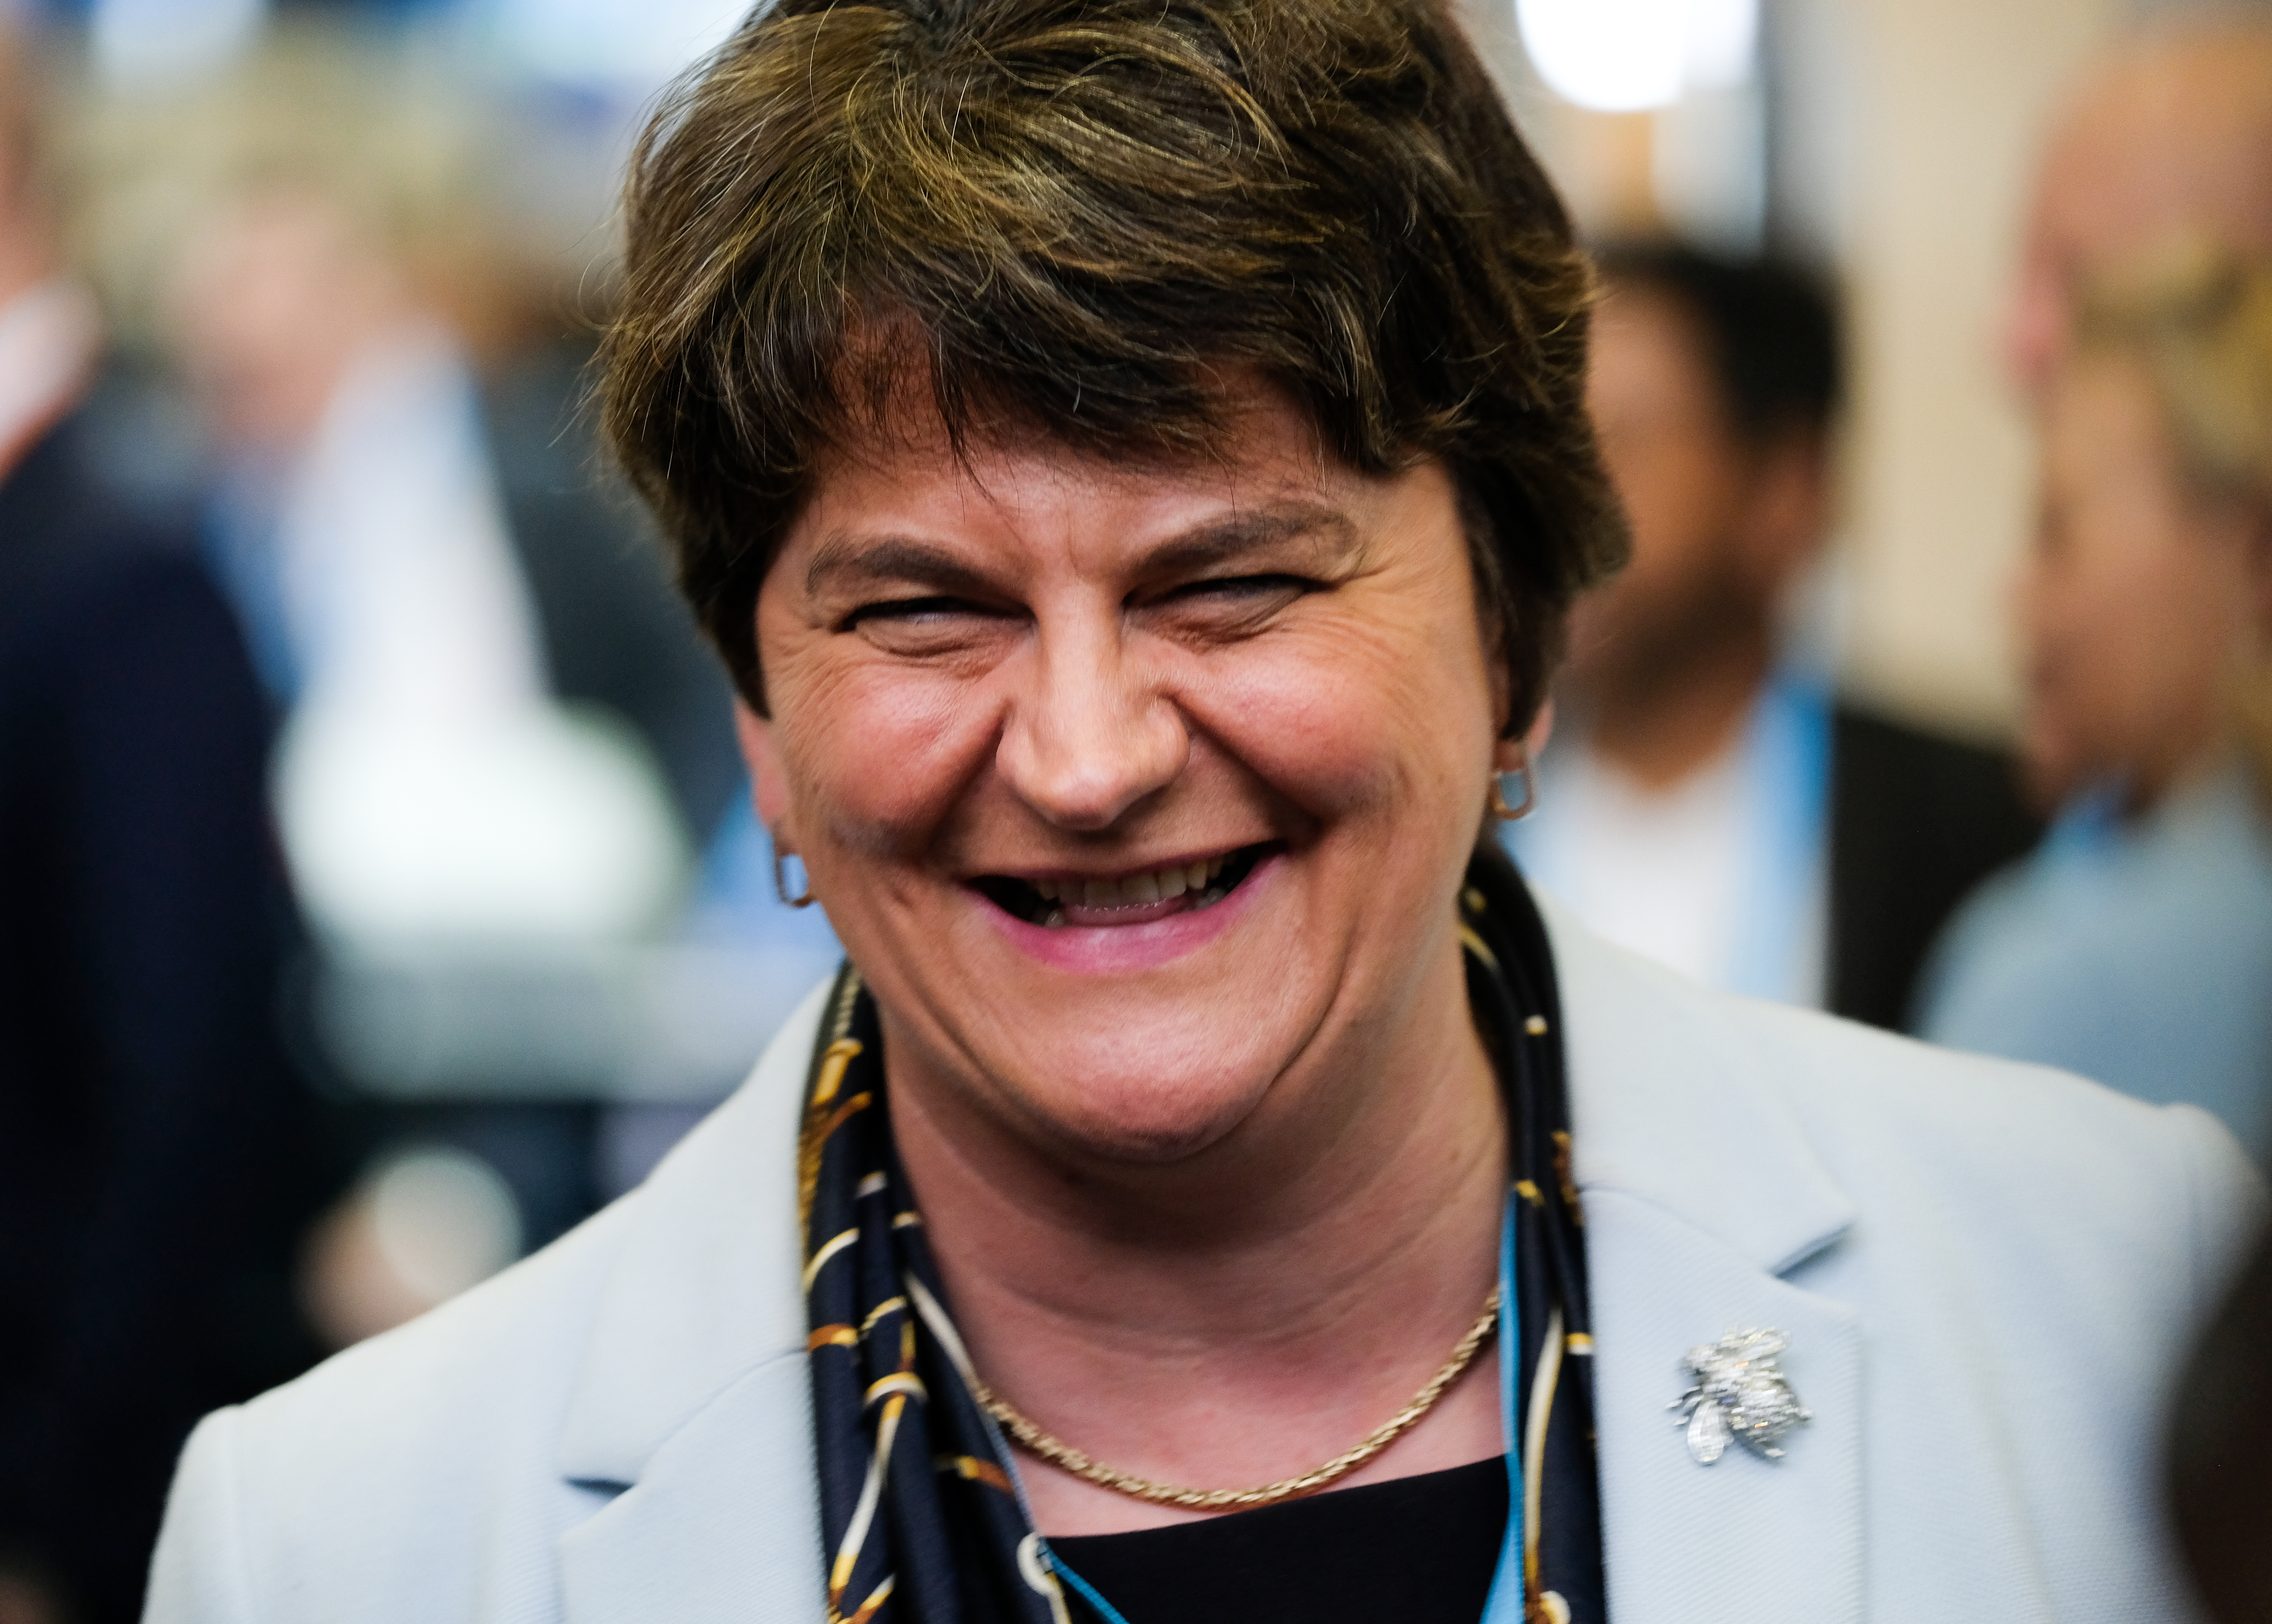 Arlene Foster, the leader of the Democratic Unionist Party, at the Conservative Party Conference.